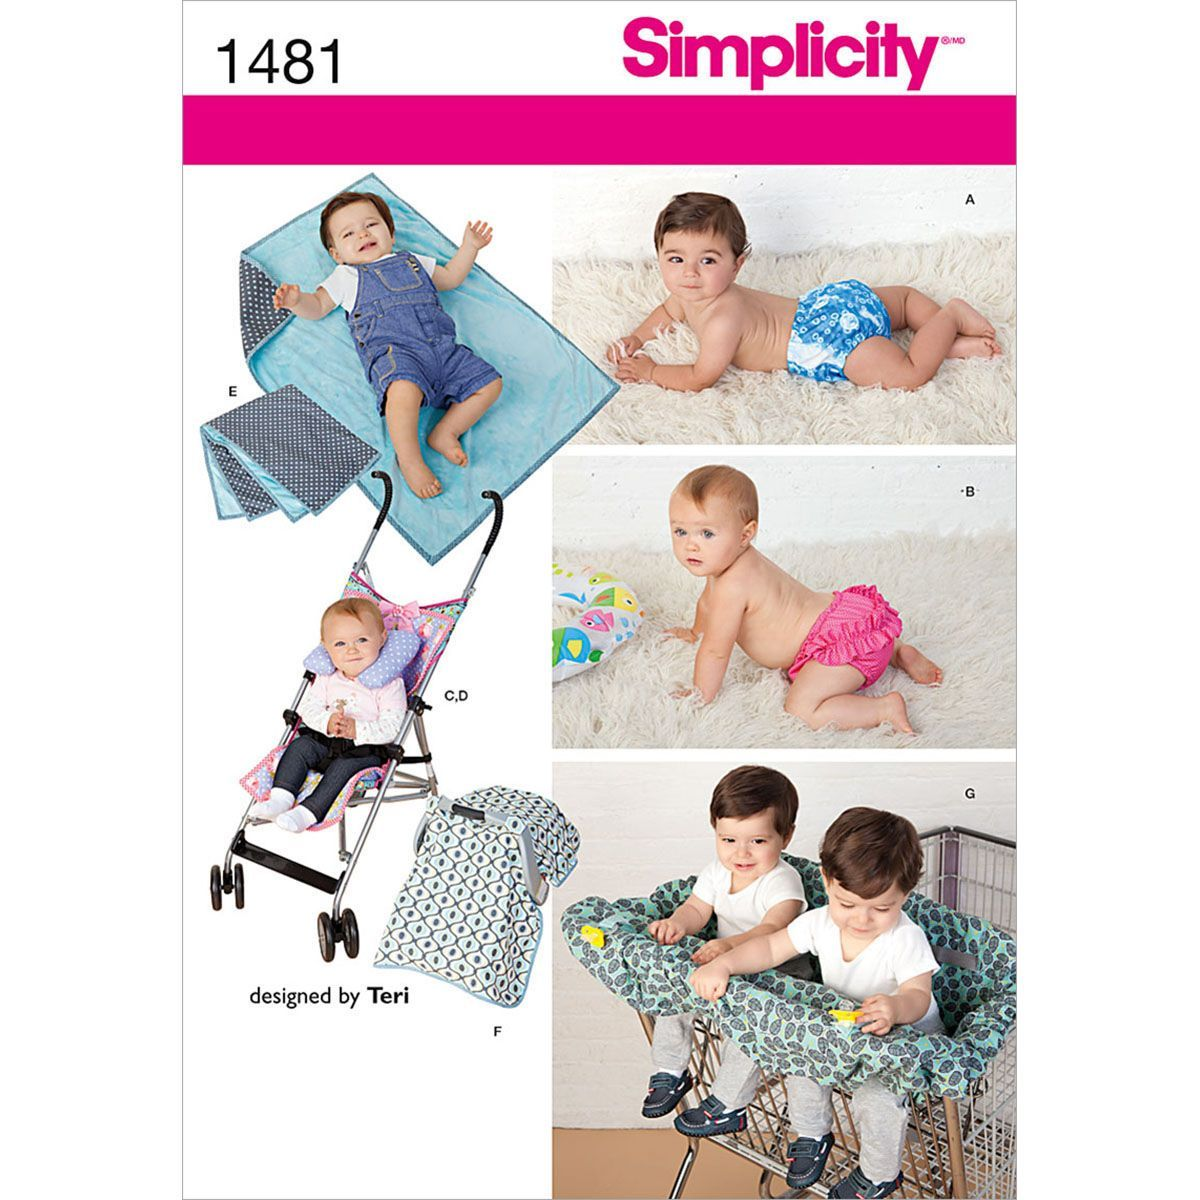 Simplicity Pattern 1481A All Sizes - Crafts Crafts